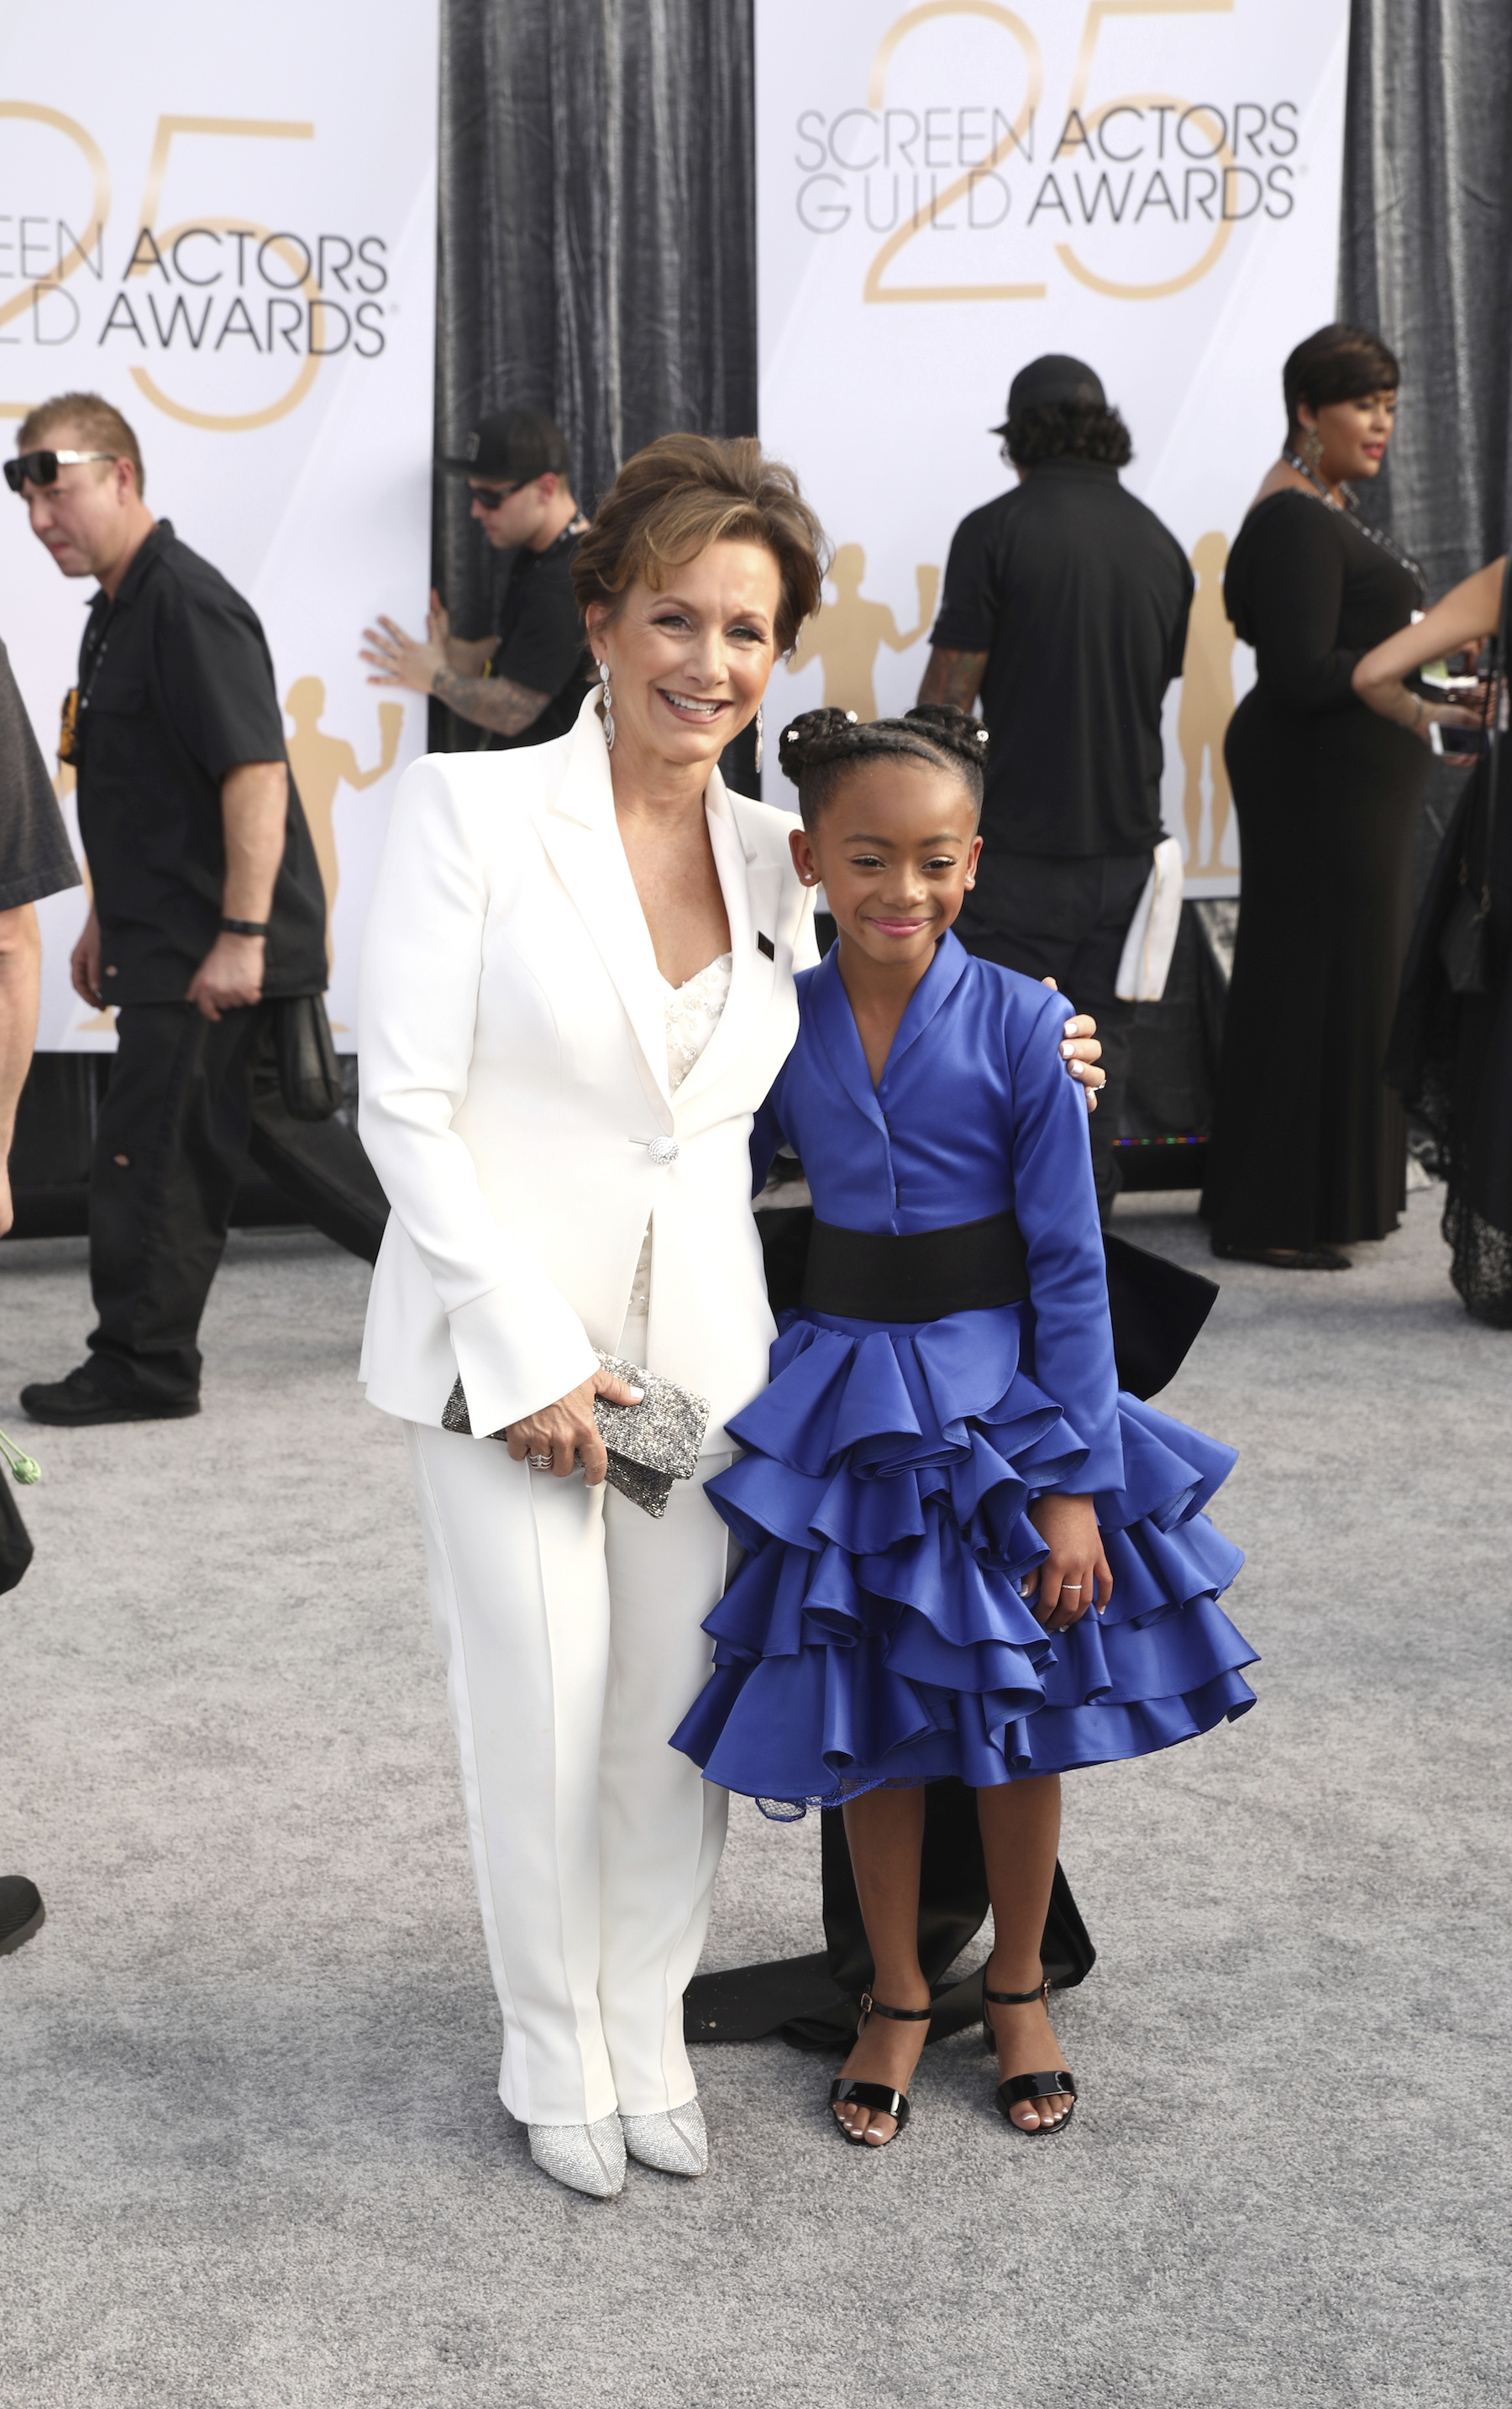 "<div class=""meta image-caption""><div class=""origin-logo origin-image ap""><span>AP</span></div><span class=""caption-text"">Gabrielle Carteris, left, and Faithe C. Herman arrive at the 25th annual Screen Actors Guild Awards at the Shrine Auditorium & Expo Hall on Sunday, Jan. 27, 2019, in Los Angeles. (Matt Sayles/Invision/AP)</span></div>"